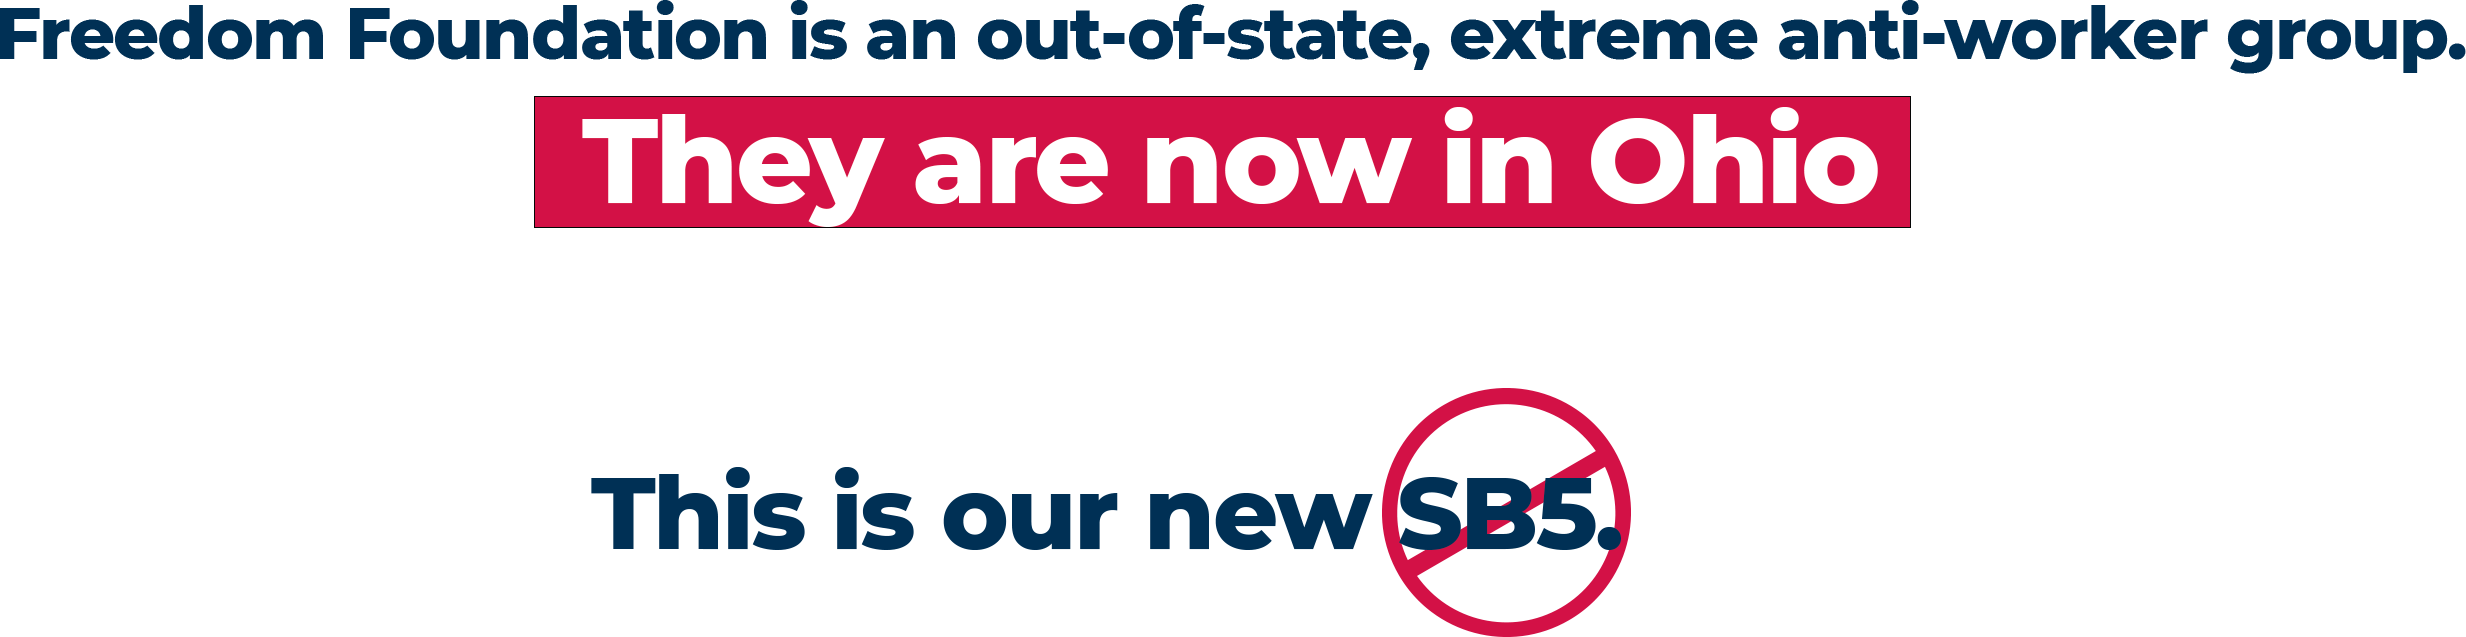 Freedom Foundation is an out-of-state, extreme anti-worker group. They are now in Ohio and they are openly anti-union. This is our new SB5.